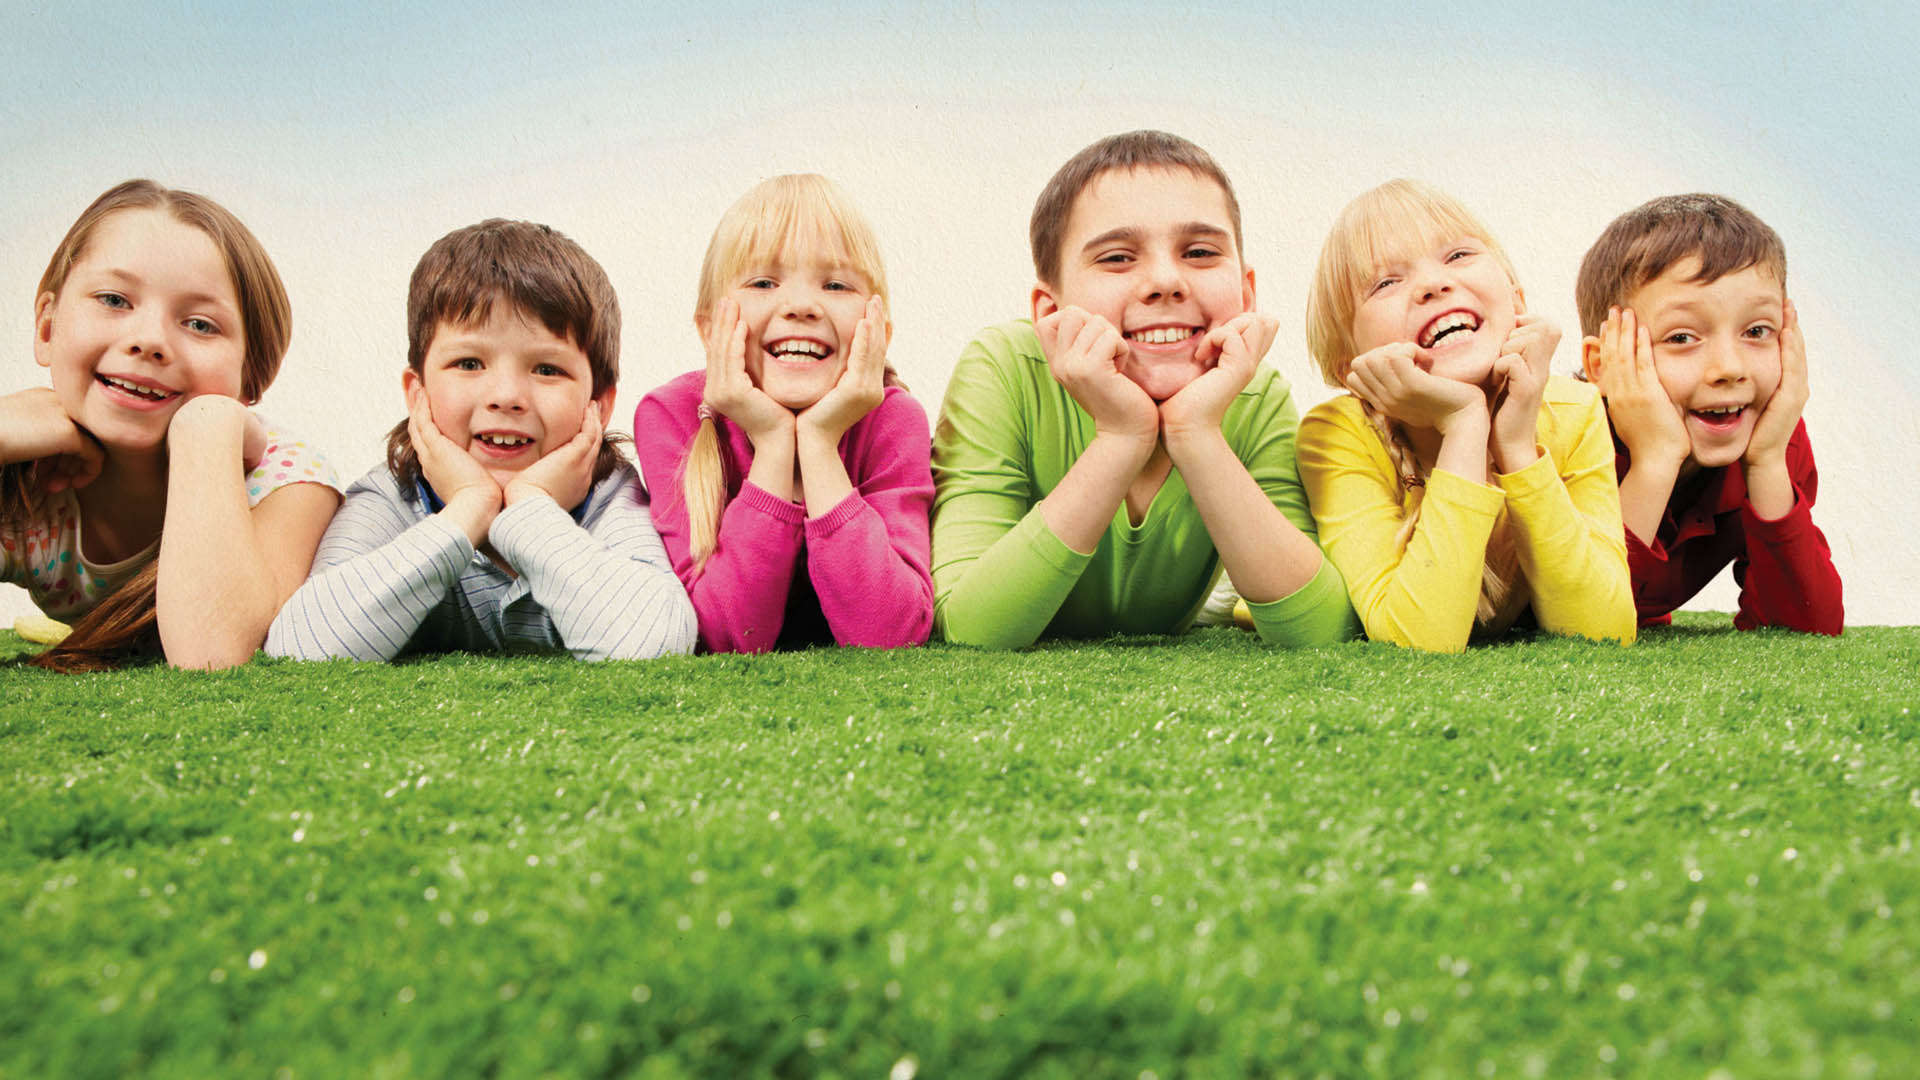 happy children's day greetings and wallpapers - hd, retina - techicy